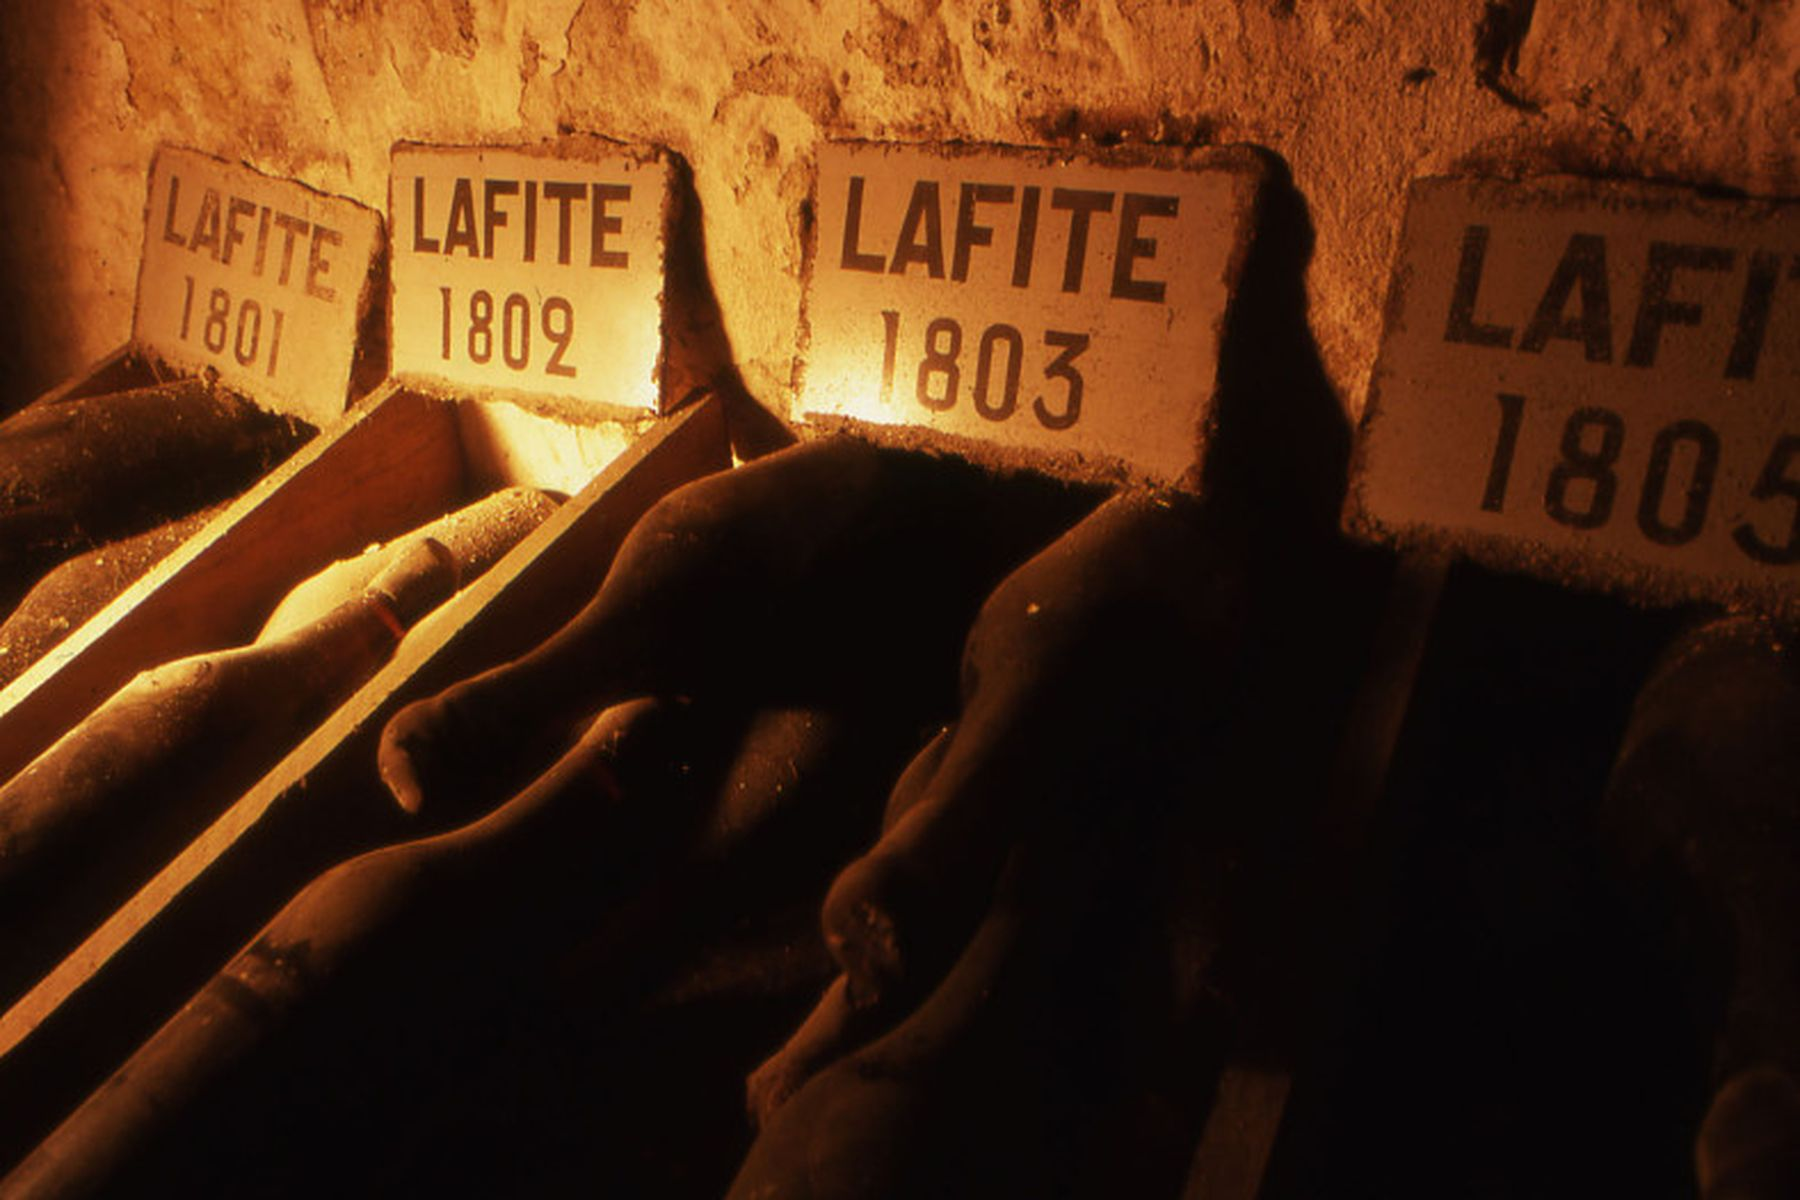 lafite-cru-exception-estimer-sa-cave-à-vin-location-caves-à-vin-privatives